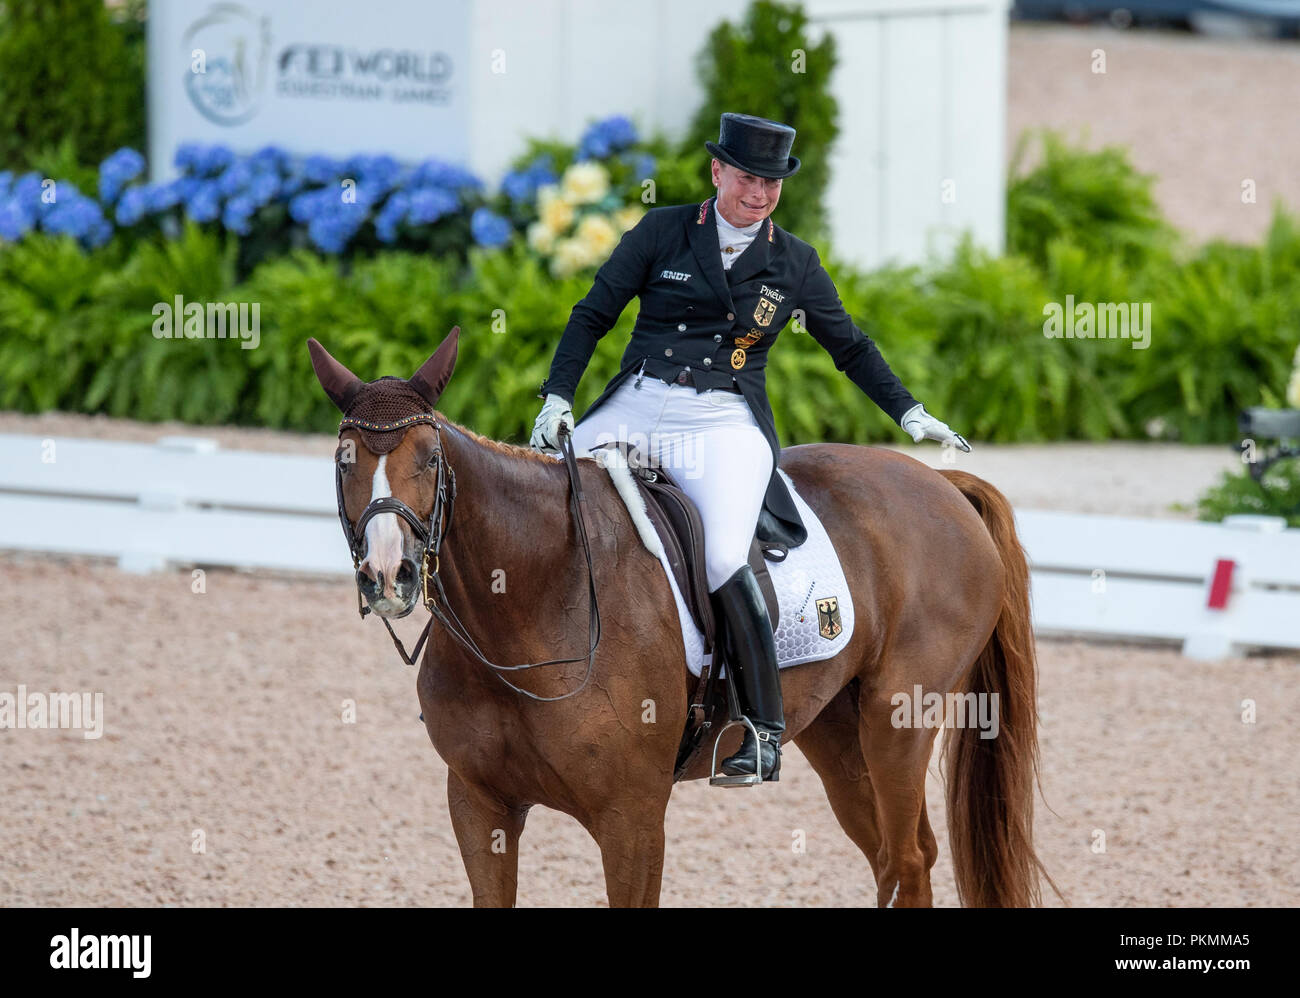 Tryon, USA. 13th Sep, 2018. Equestrian, FEI World Equestrian Game 2018, Grand Prix de Dressage: Isabell Werth crying for joy while on her horse Bella Rose. Credit: Stefan Lafrentz/dpa/Alamy Live News - Stock Image